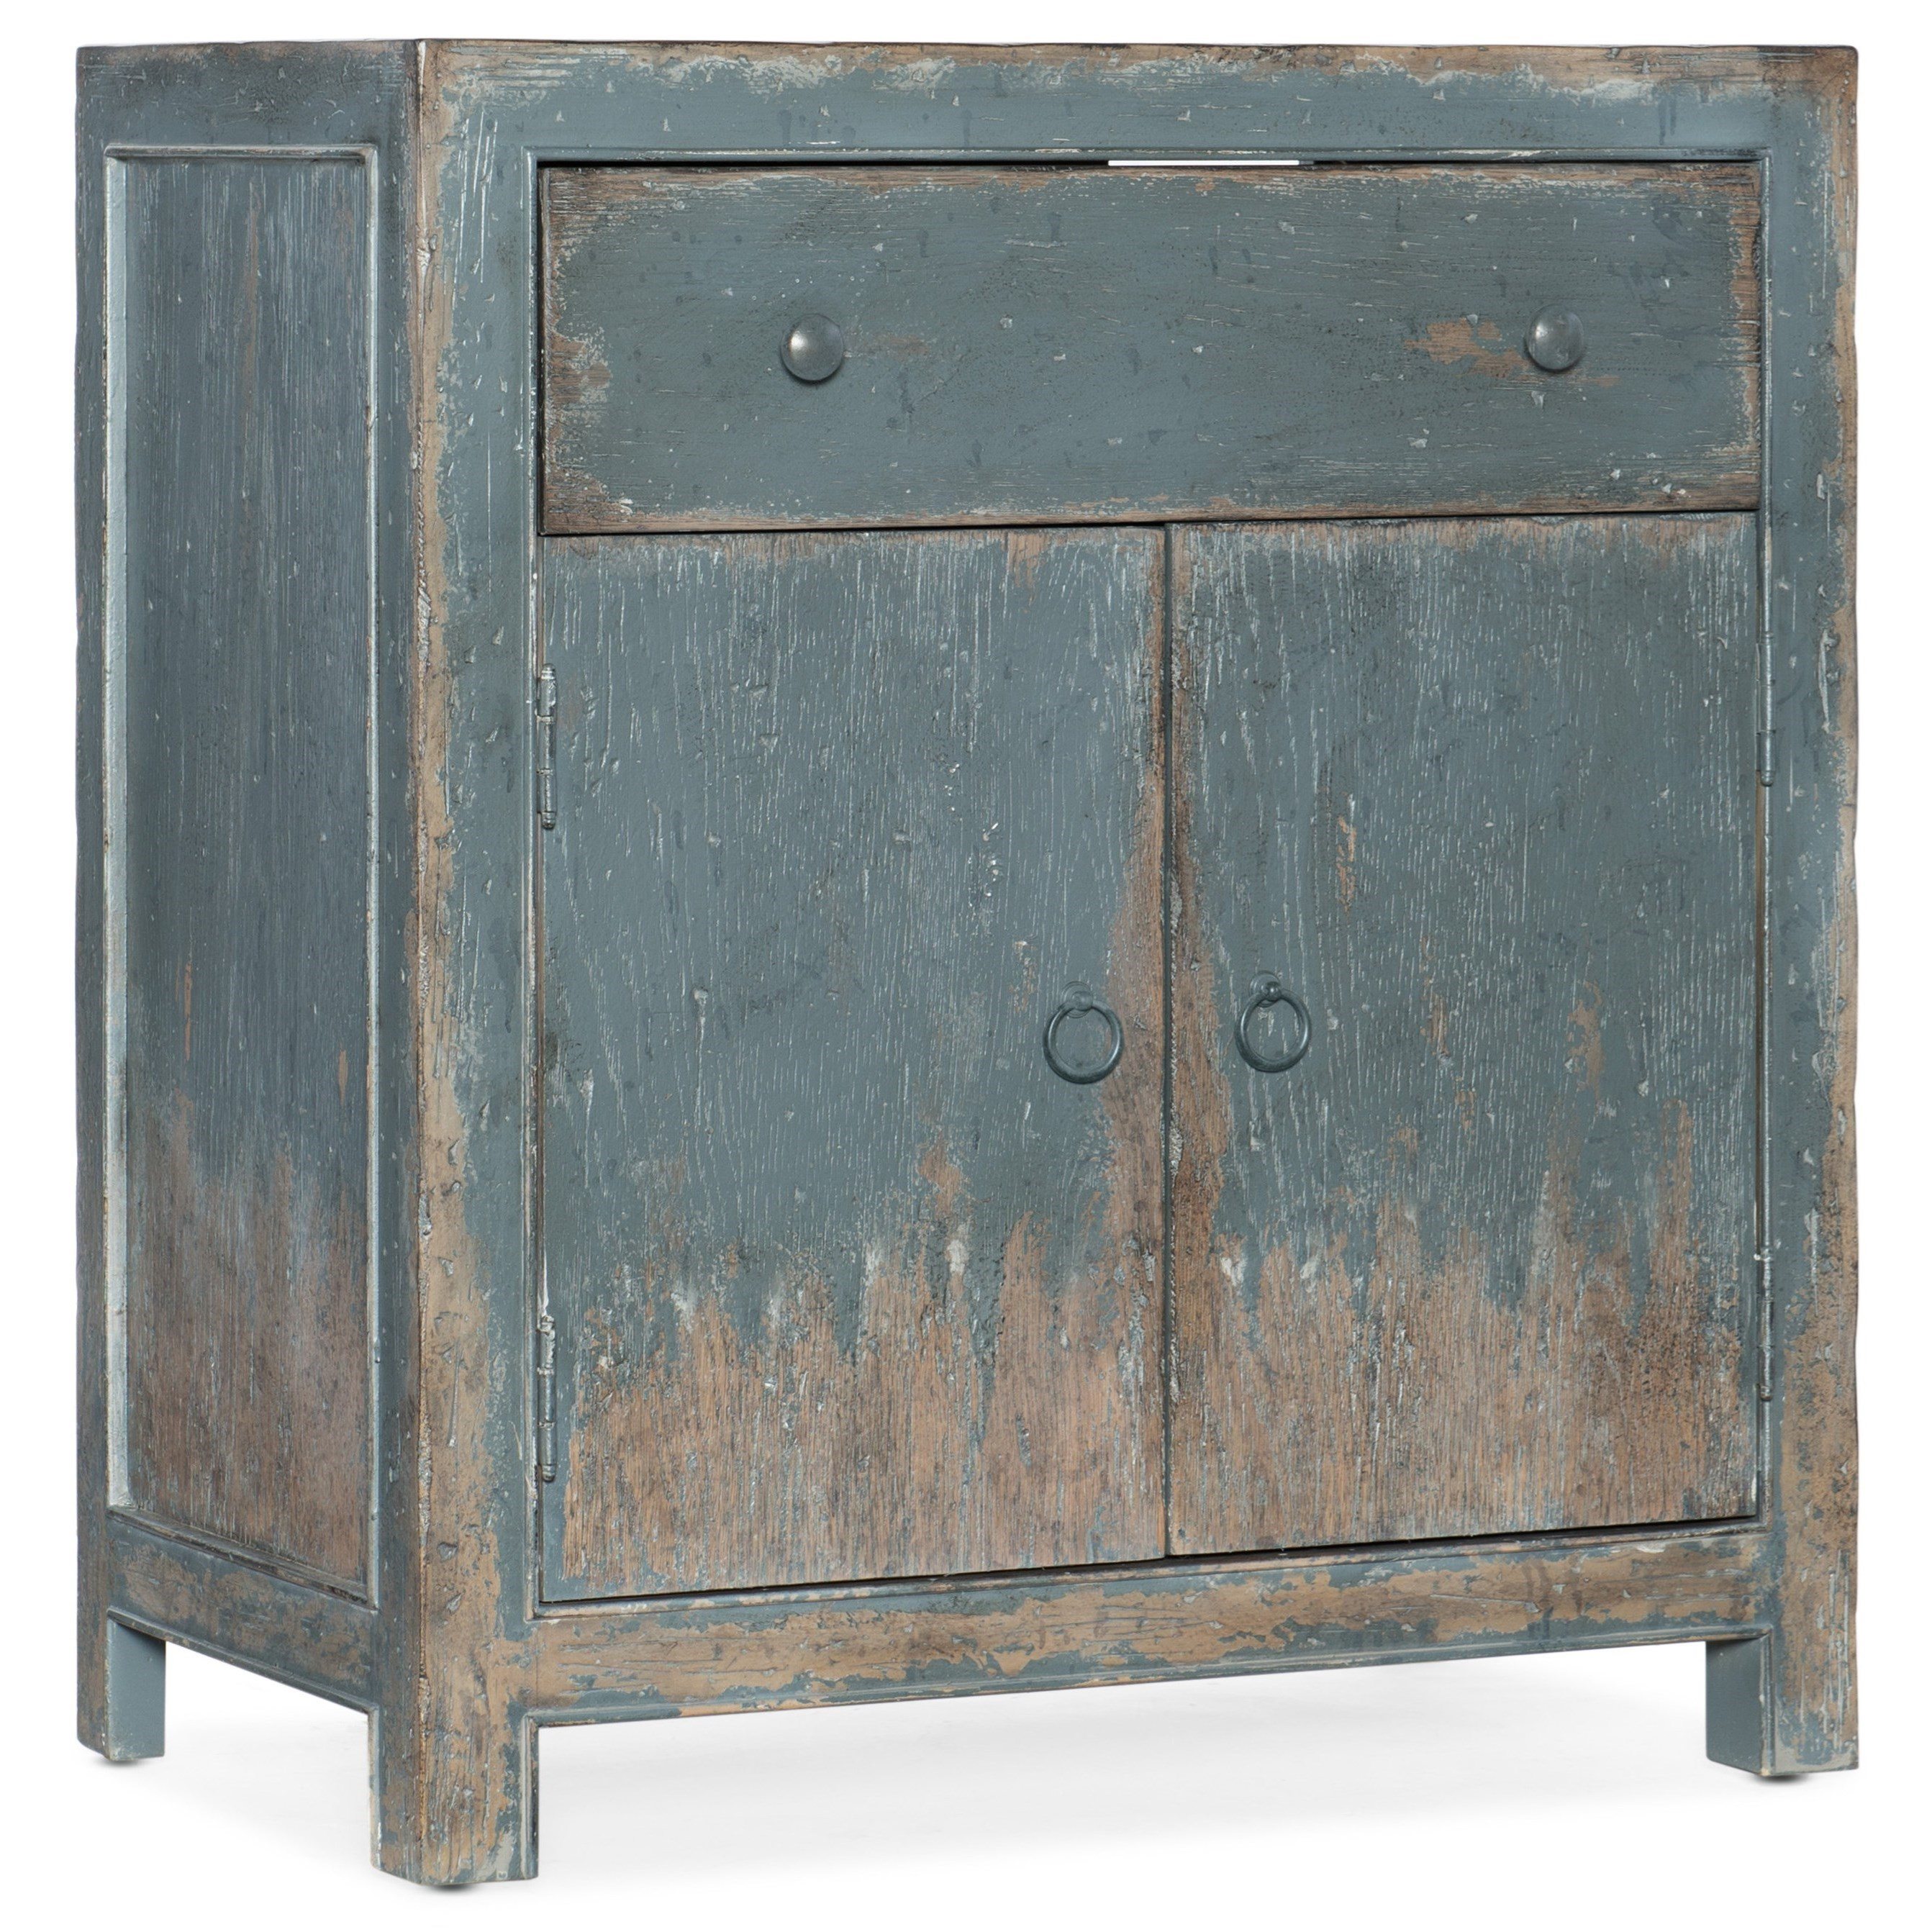 Boheme Castelle Accent Chest by Hooker Furniture at Baer's Furniture